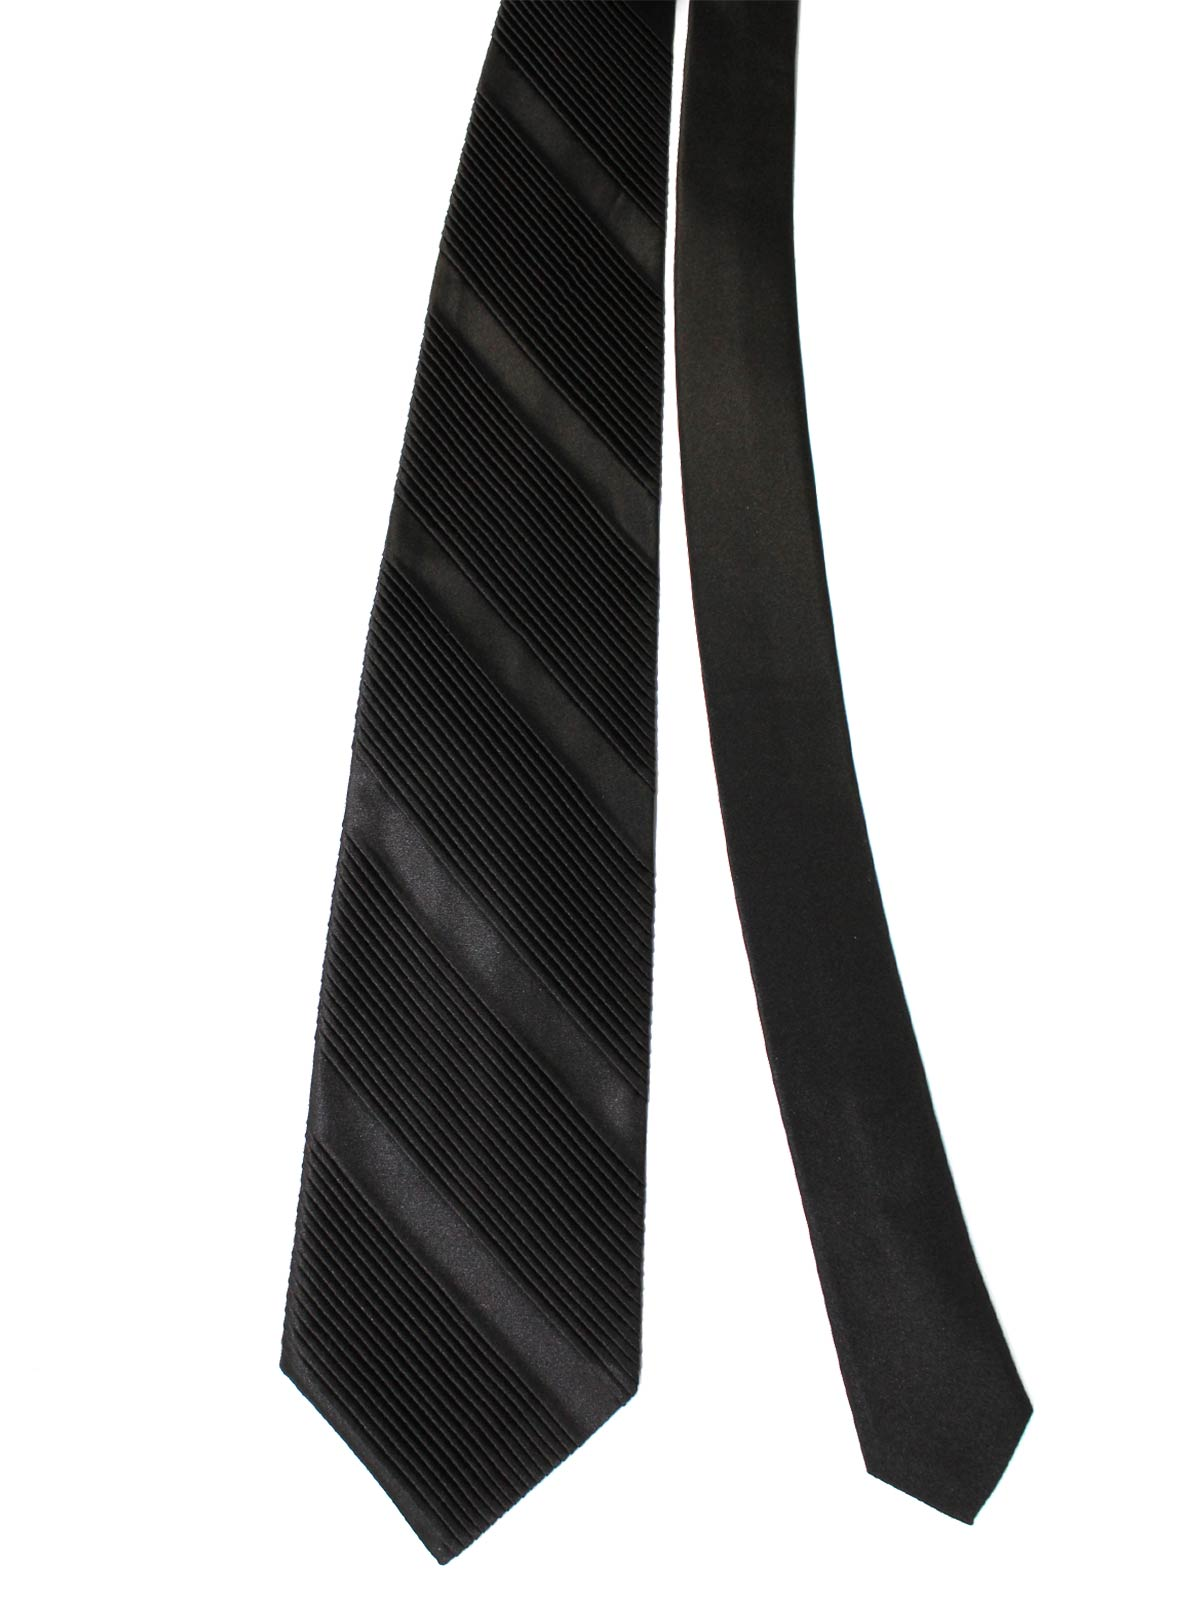 Stefano Ricci Pleated Silk Tie Solid Black - Wide Necktie